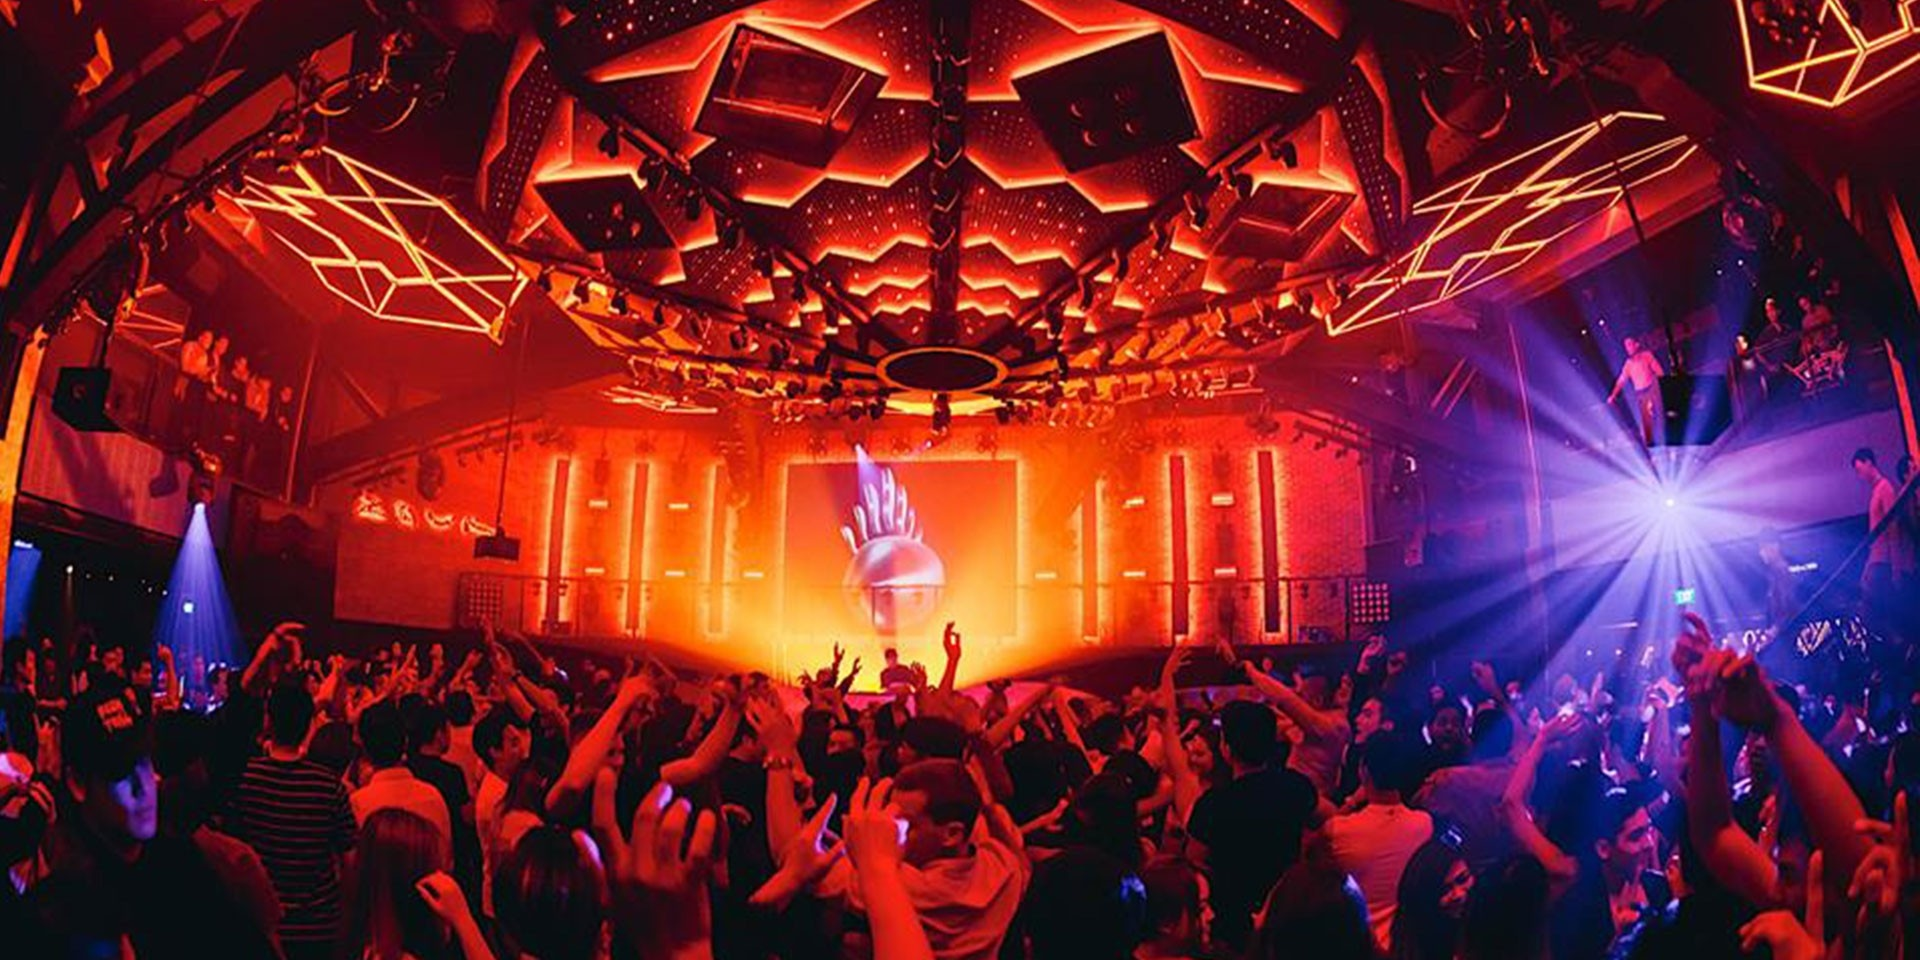 Zouk Singapore places third in DJ Mag's Top 100 Clubs list, Cé La Vi jumps up to  67